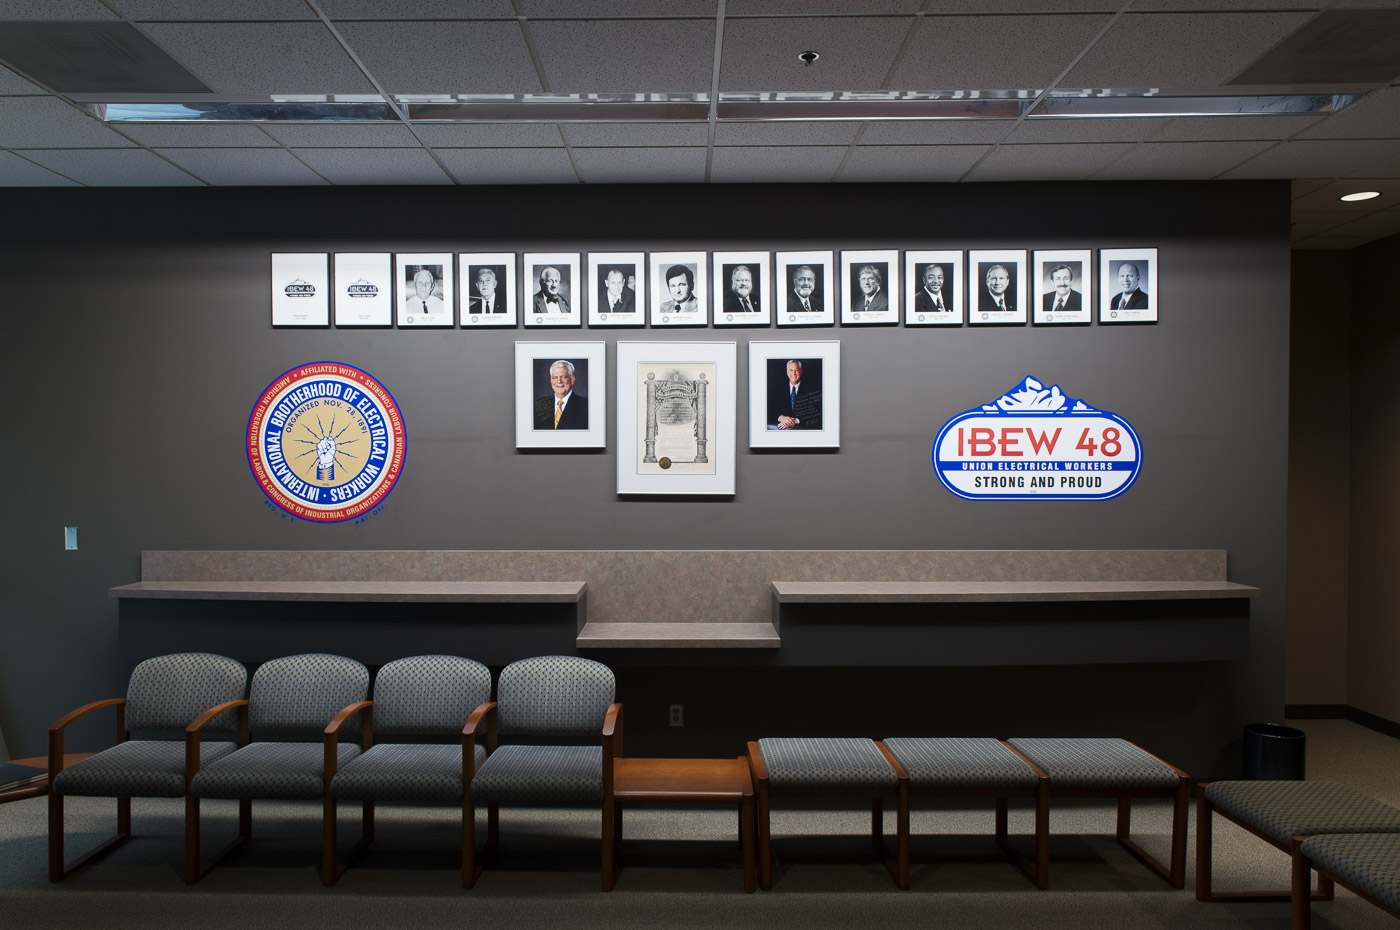 International Brotherhood of Electrical Workers Union | IBEW Local on